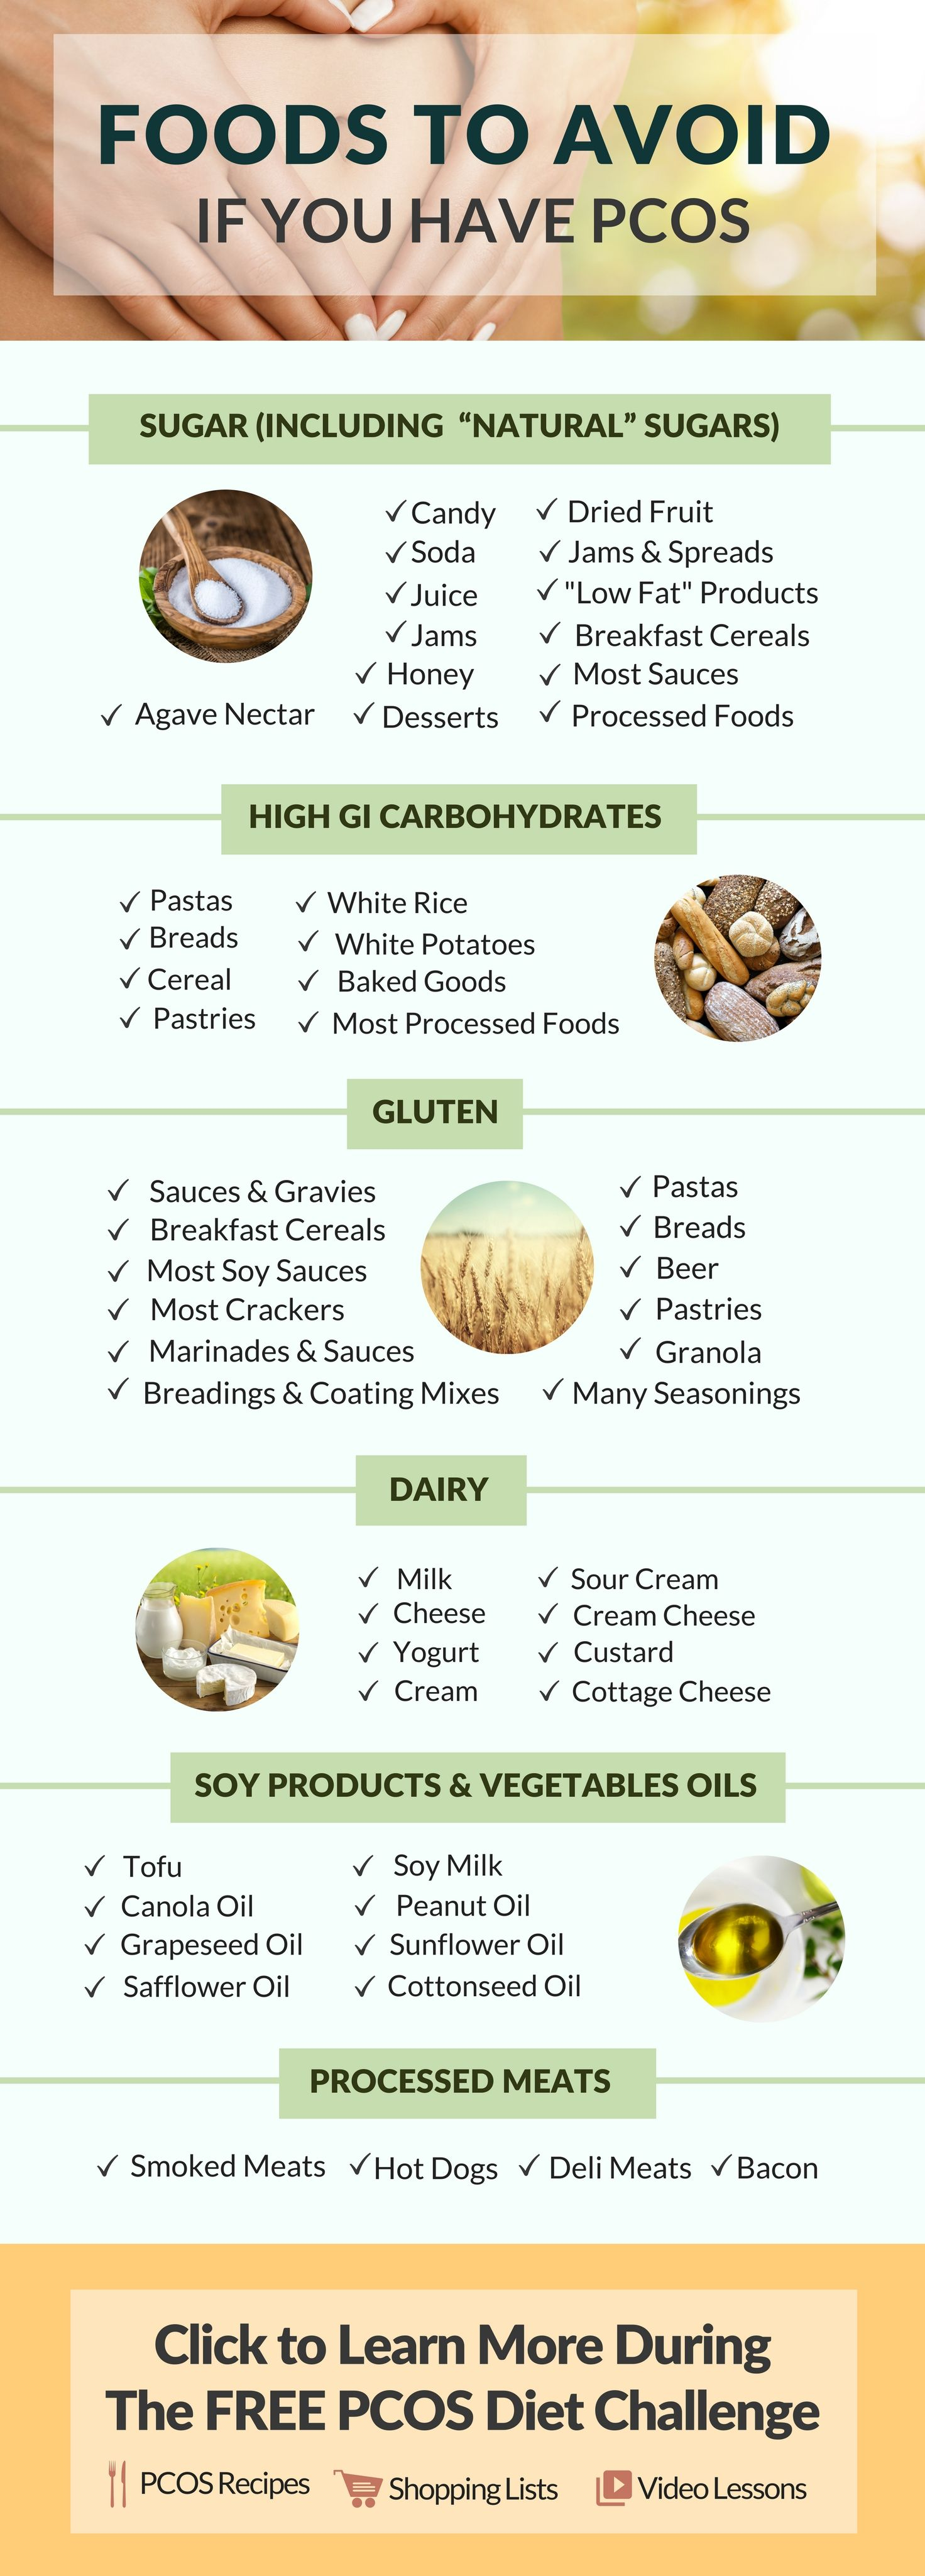 FREE Recipes Meal Plans Shopping Lists Nutritional Video